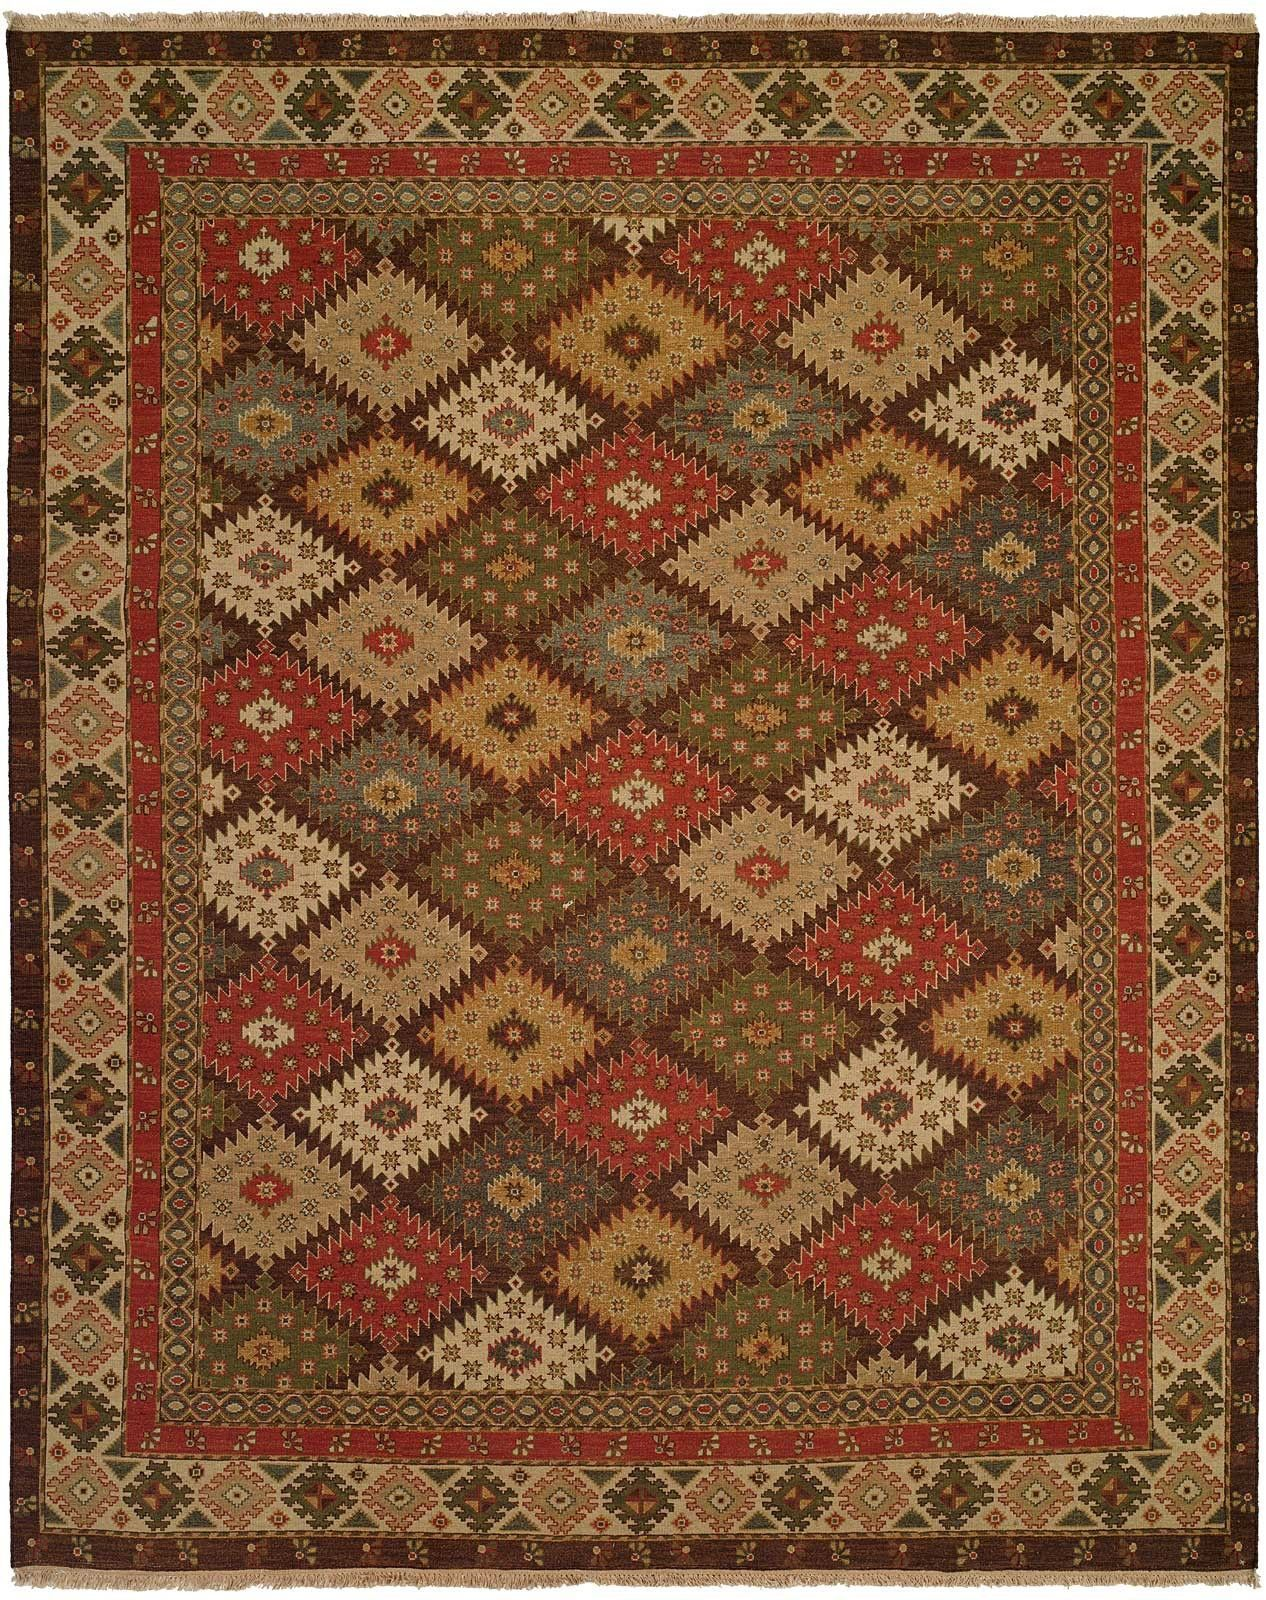 Qasr Hand Woven Green Red Area Rug Products Pinterest Throw